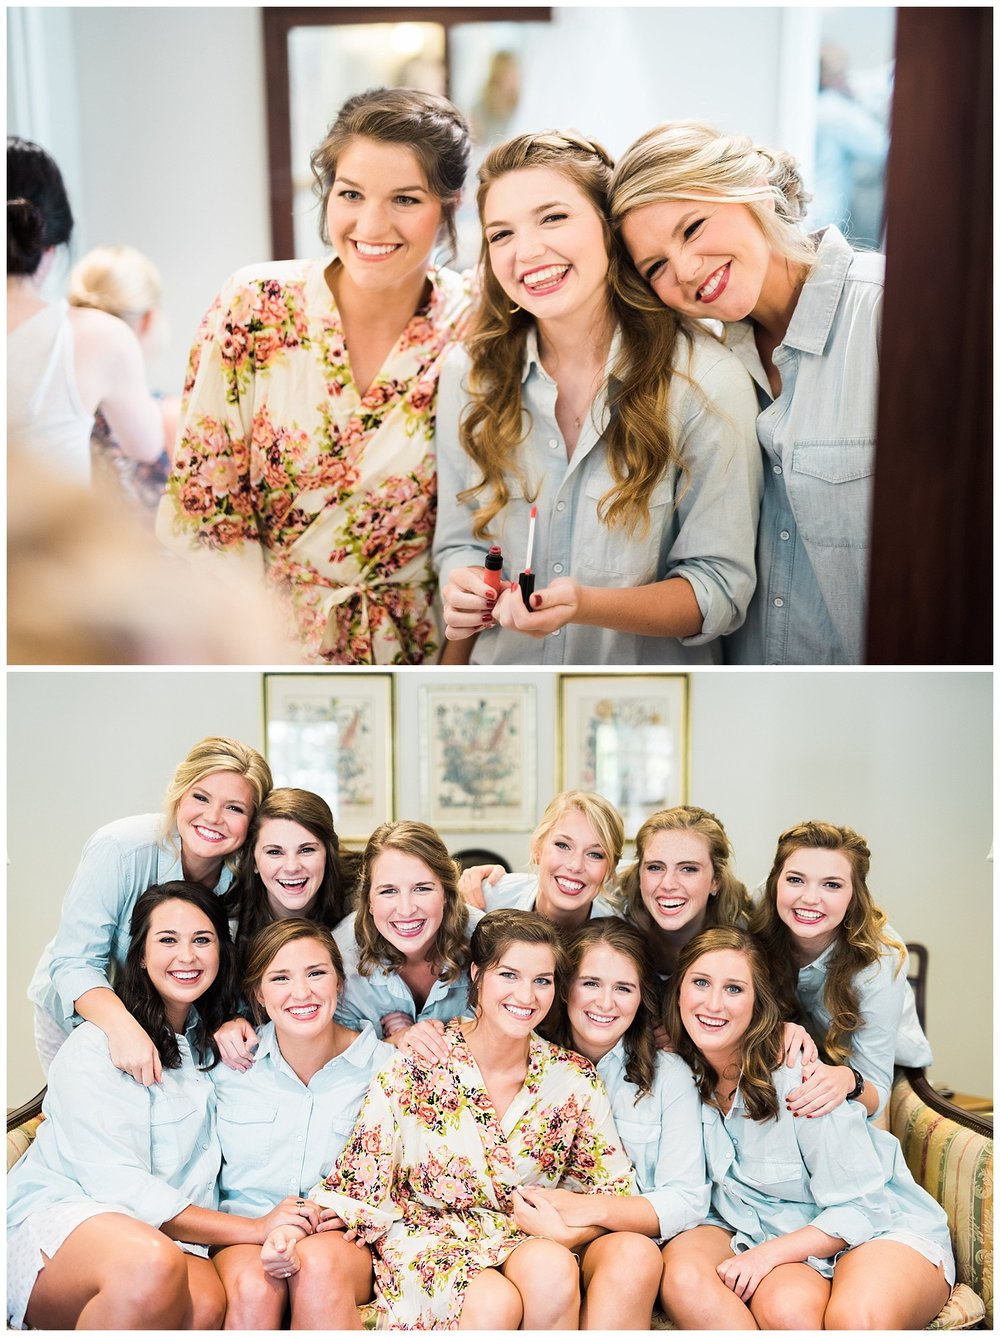 Hannah had her bridesmaids wear adorable cotton shorts, paired with a blue button down. I love the way she contrasted them with her floral robe! The colors matched the environment so perfectly and made for a beautiful morning of these ladies getting ready together.